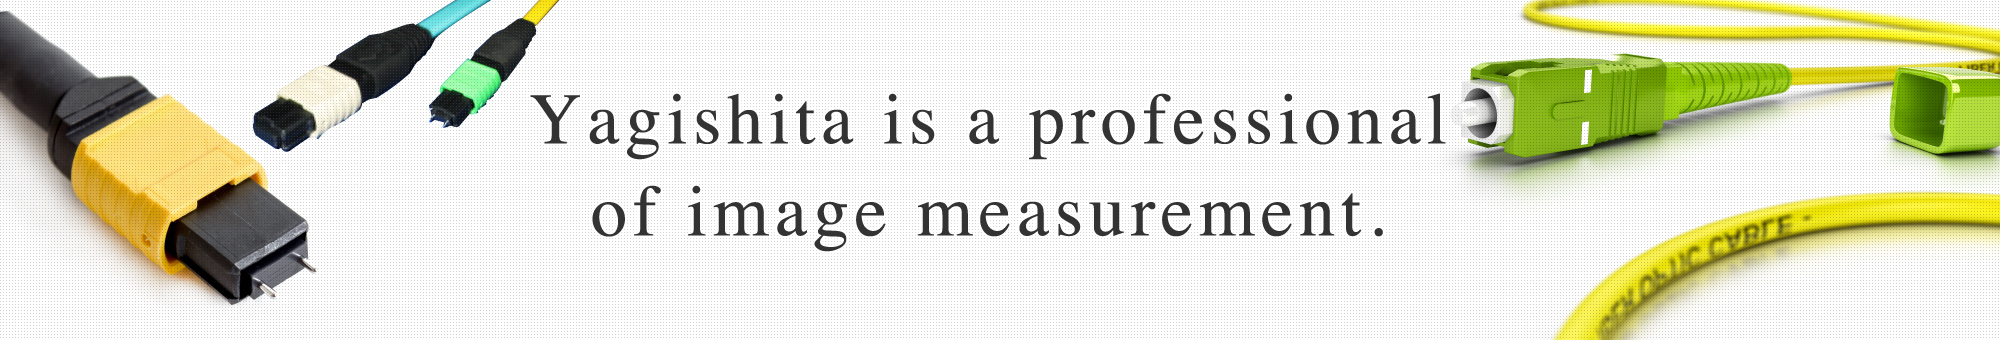 Yagishita is a professional of image measurement